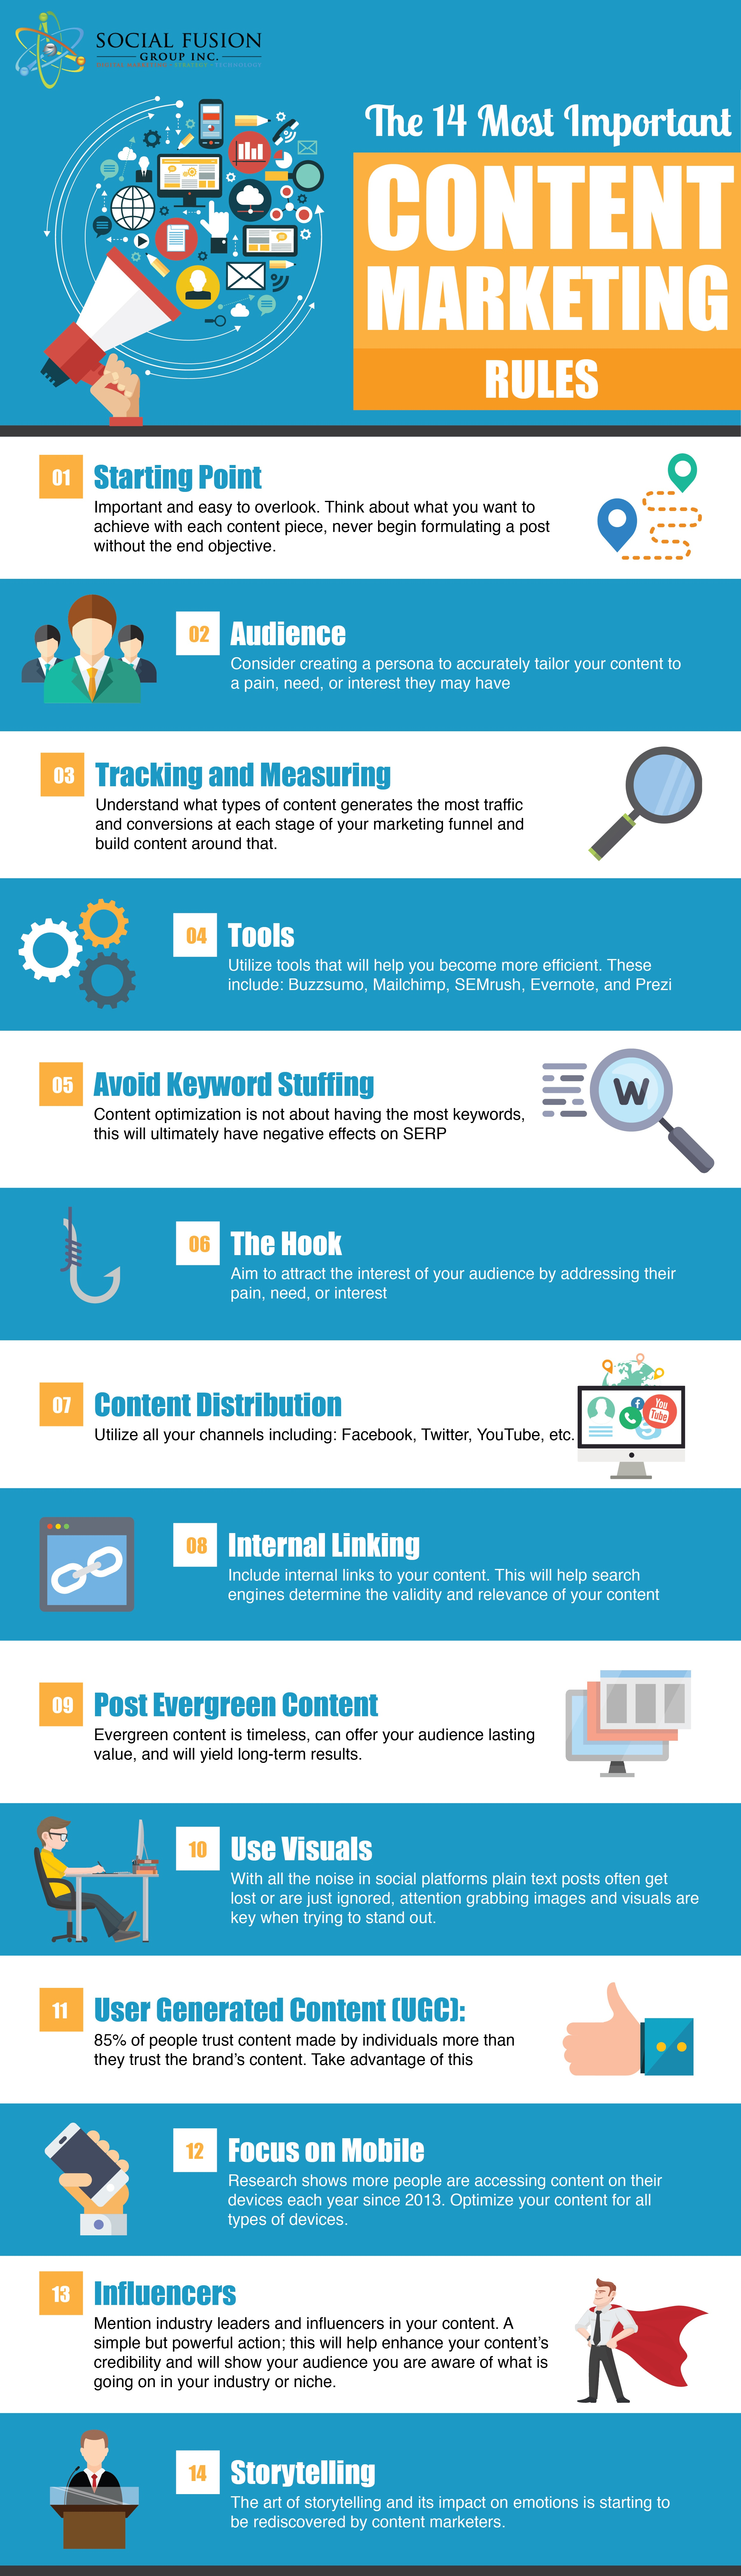 Content Marketing Infographic.jpg